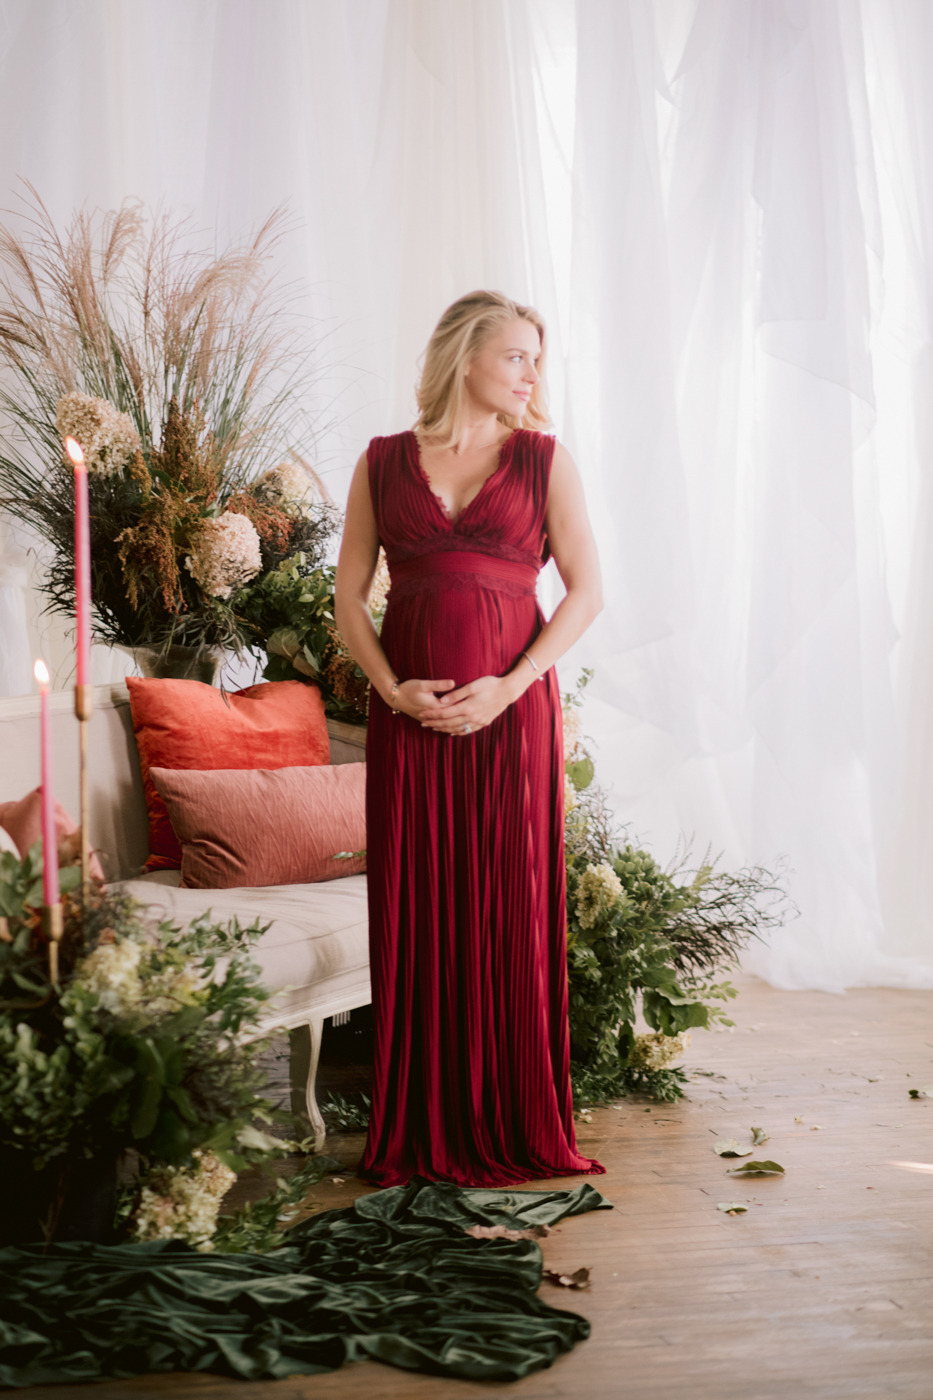 philly-bucks-county-maternity-photographer-mainline-west-chester-montgomery-county-new-jersey-nj-22.jpg